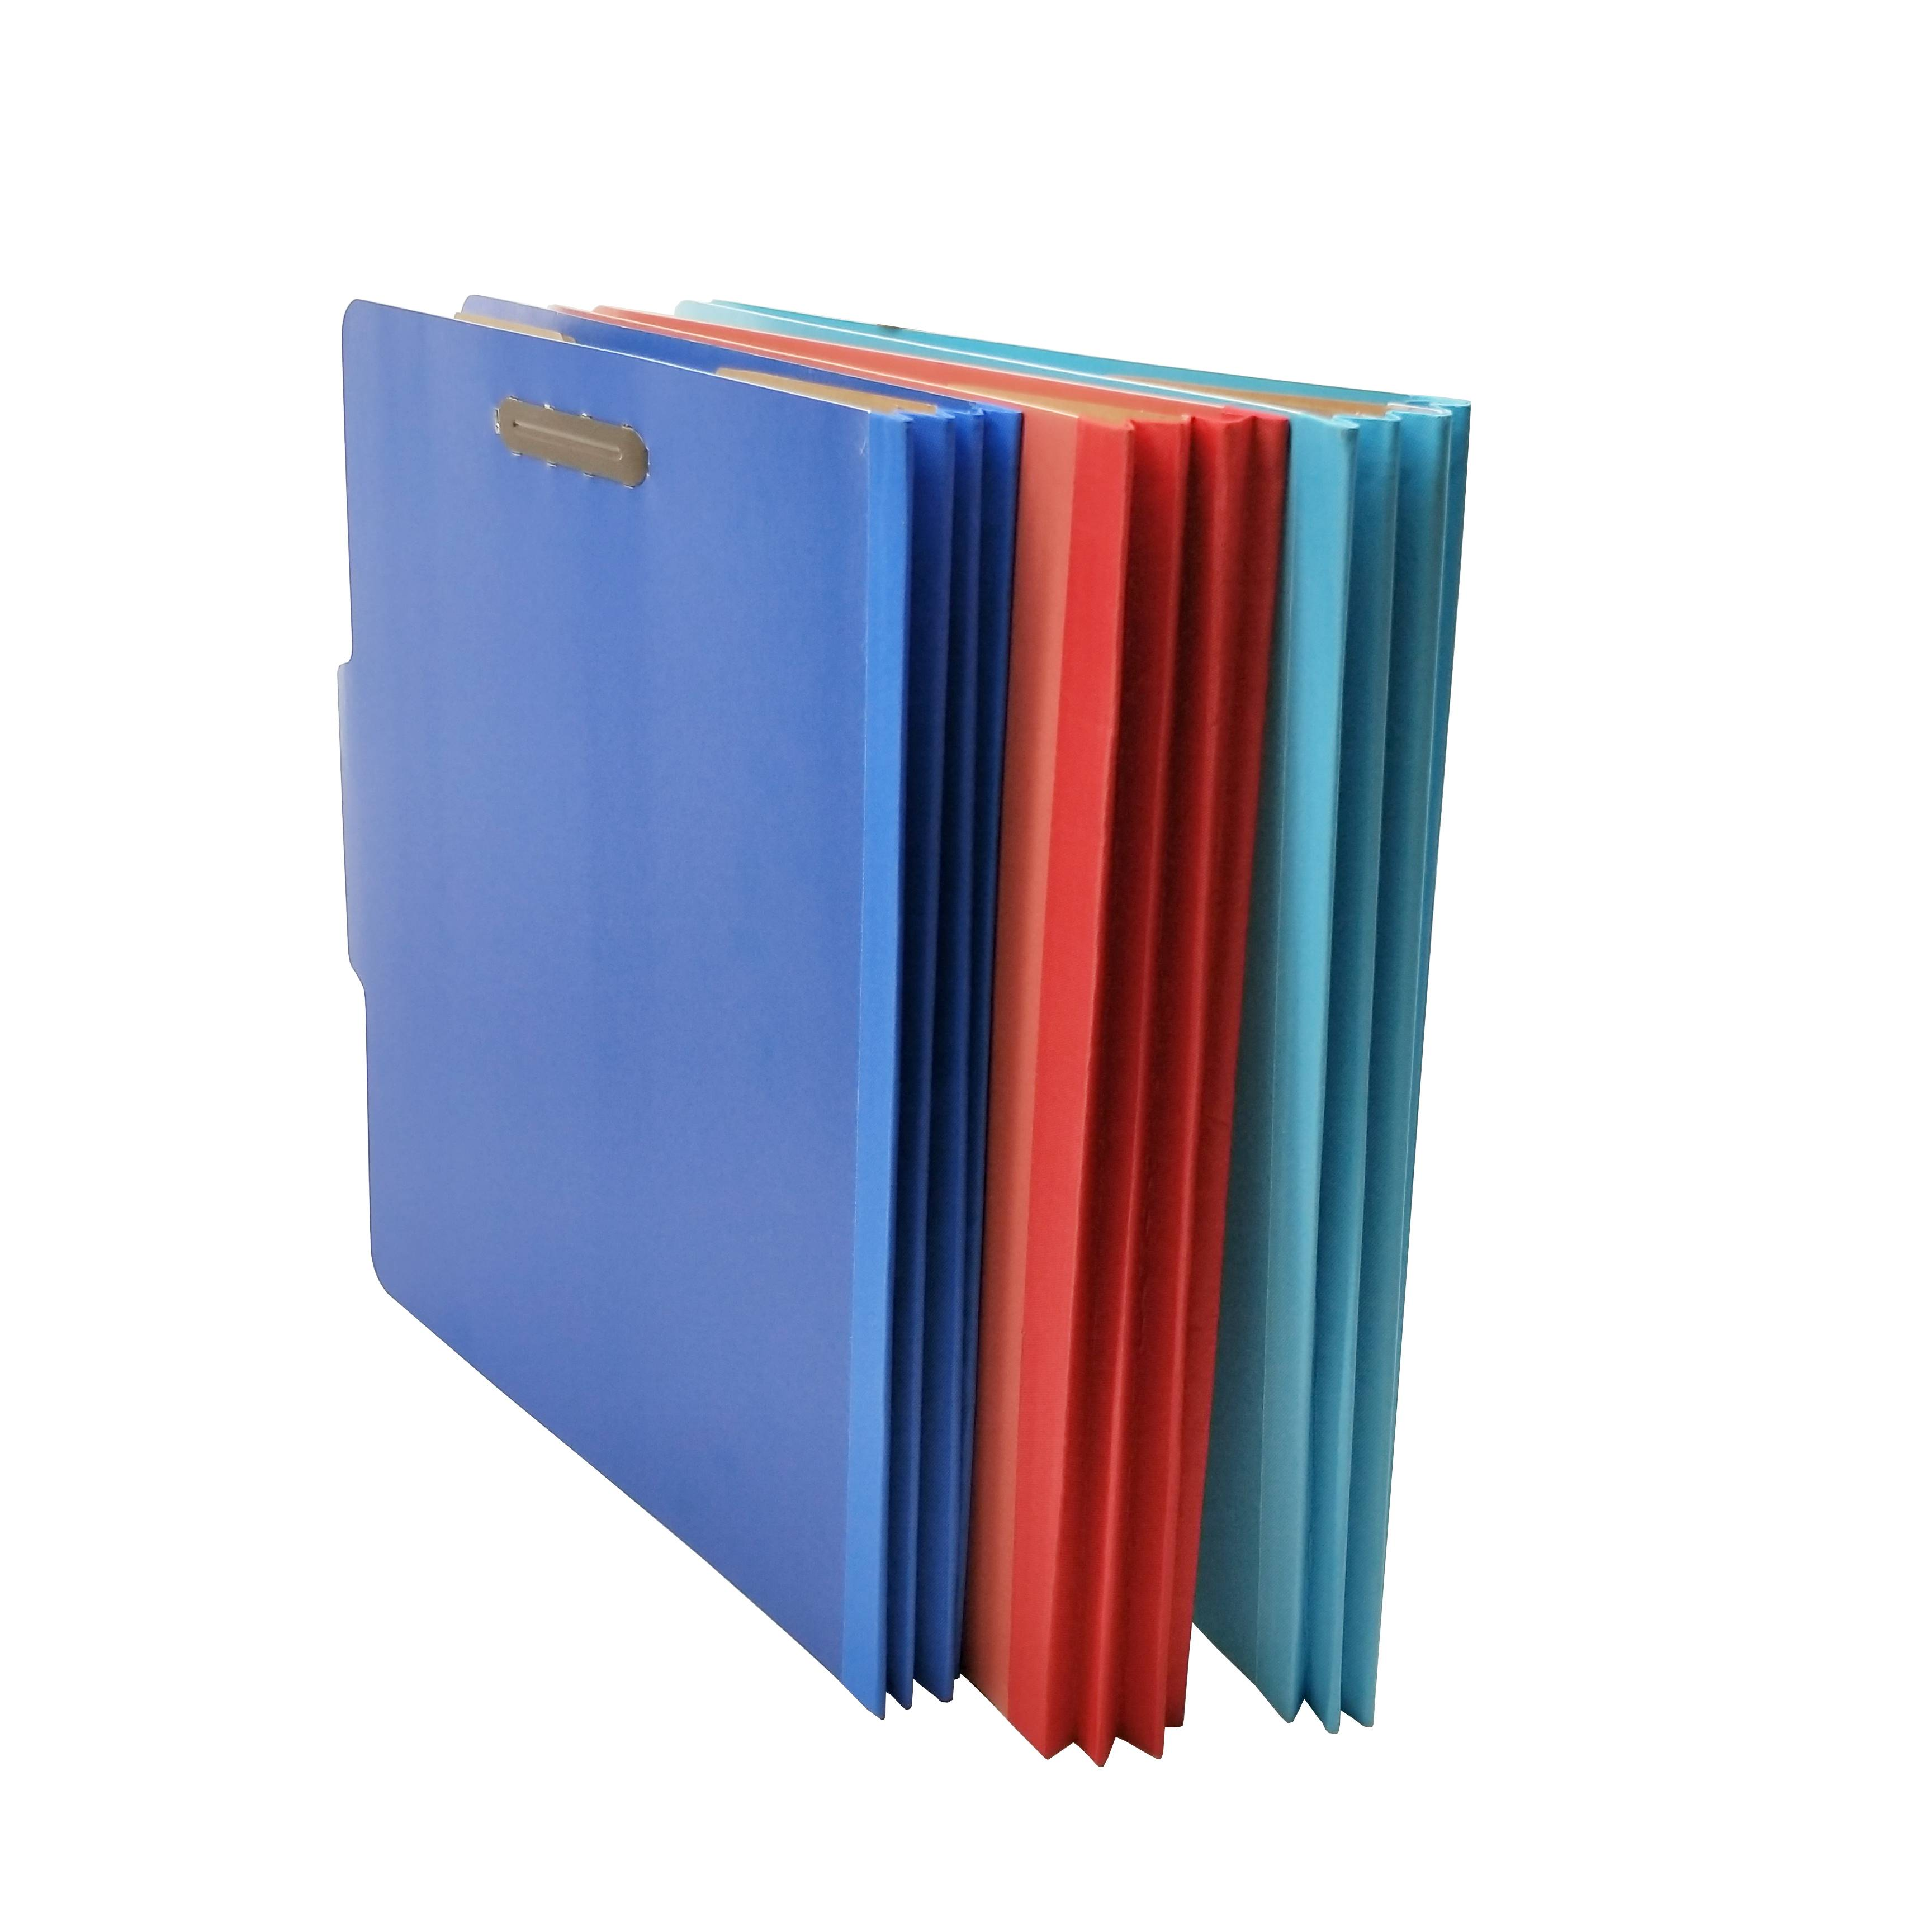 Factory made hot-sale Stationery Supplies Office - Letter Size Pressboard Fastener File Folders Designed to Organize Standard Medical Files, Office Reports – Ruiyinxiang